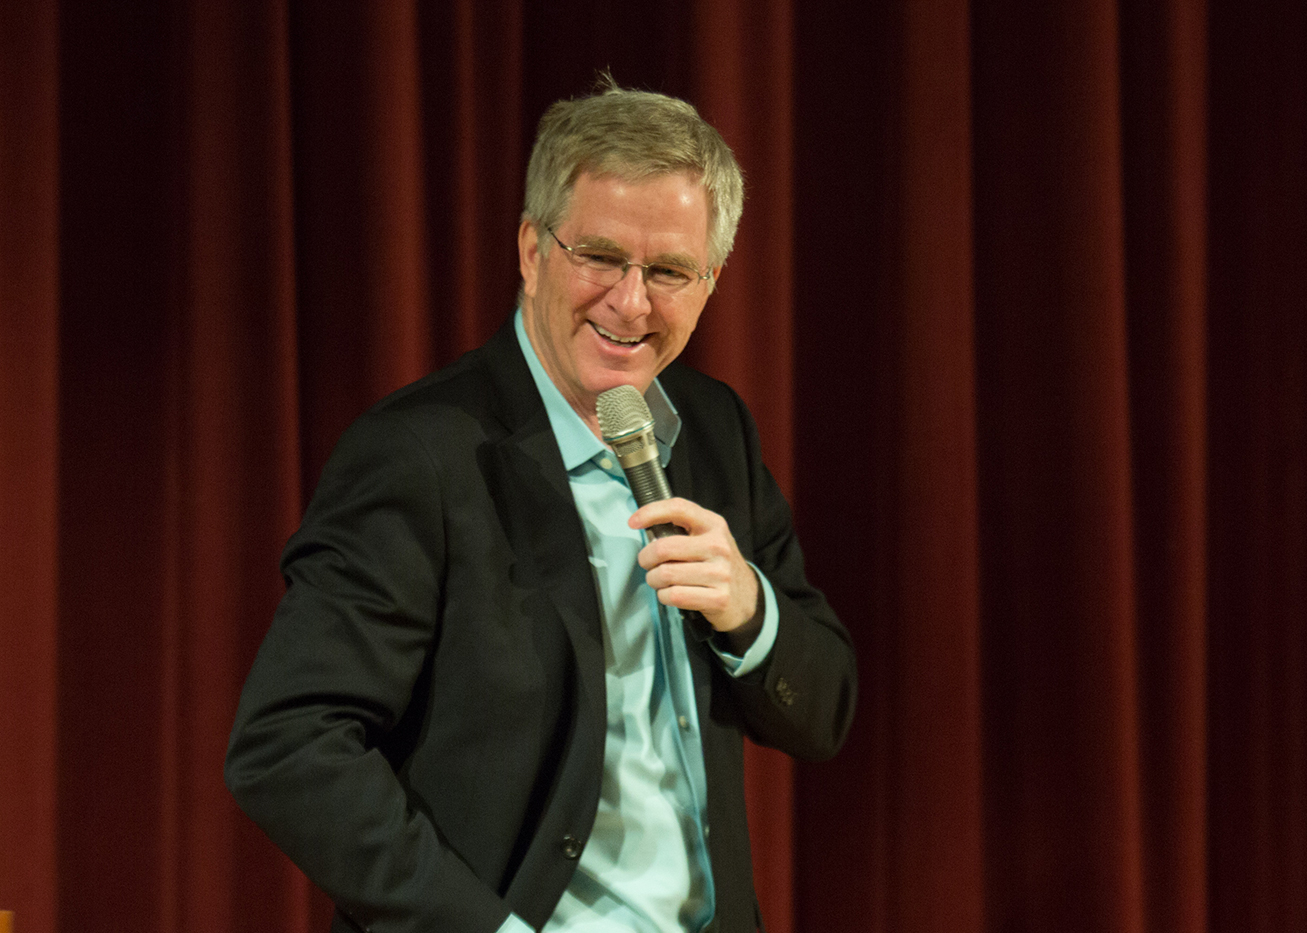 Rick Steves speaks with Lesley students in Marran Theater